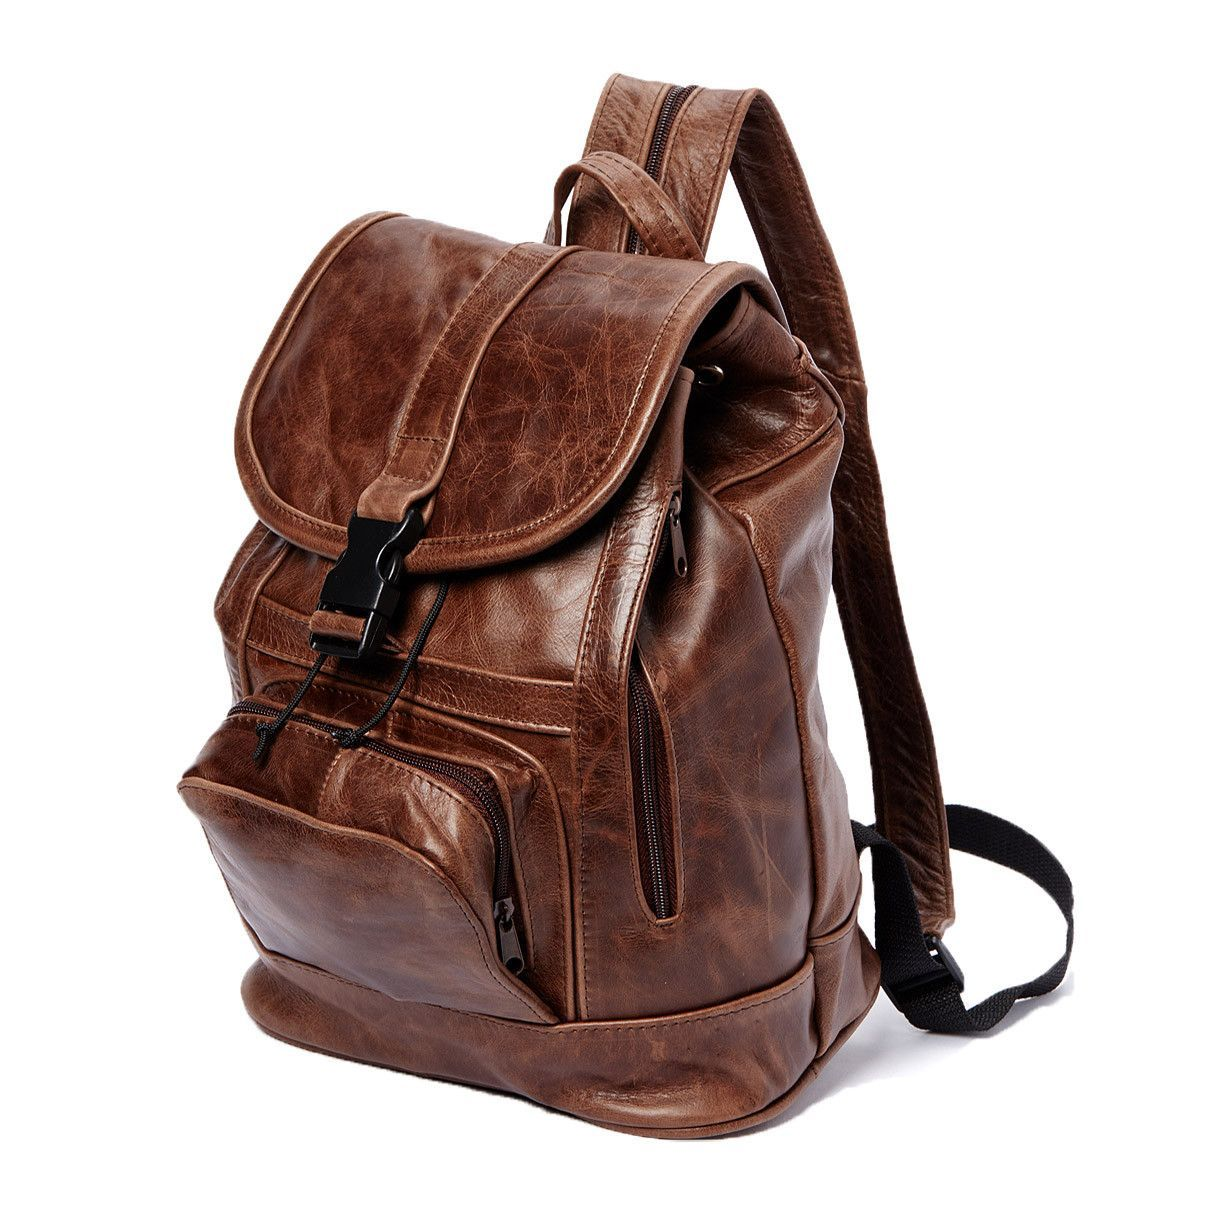 AFONiE Genuine Leather Backpack with Convertible Strap Super Soft ...